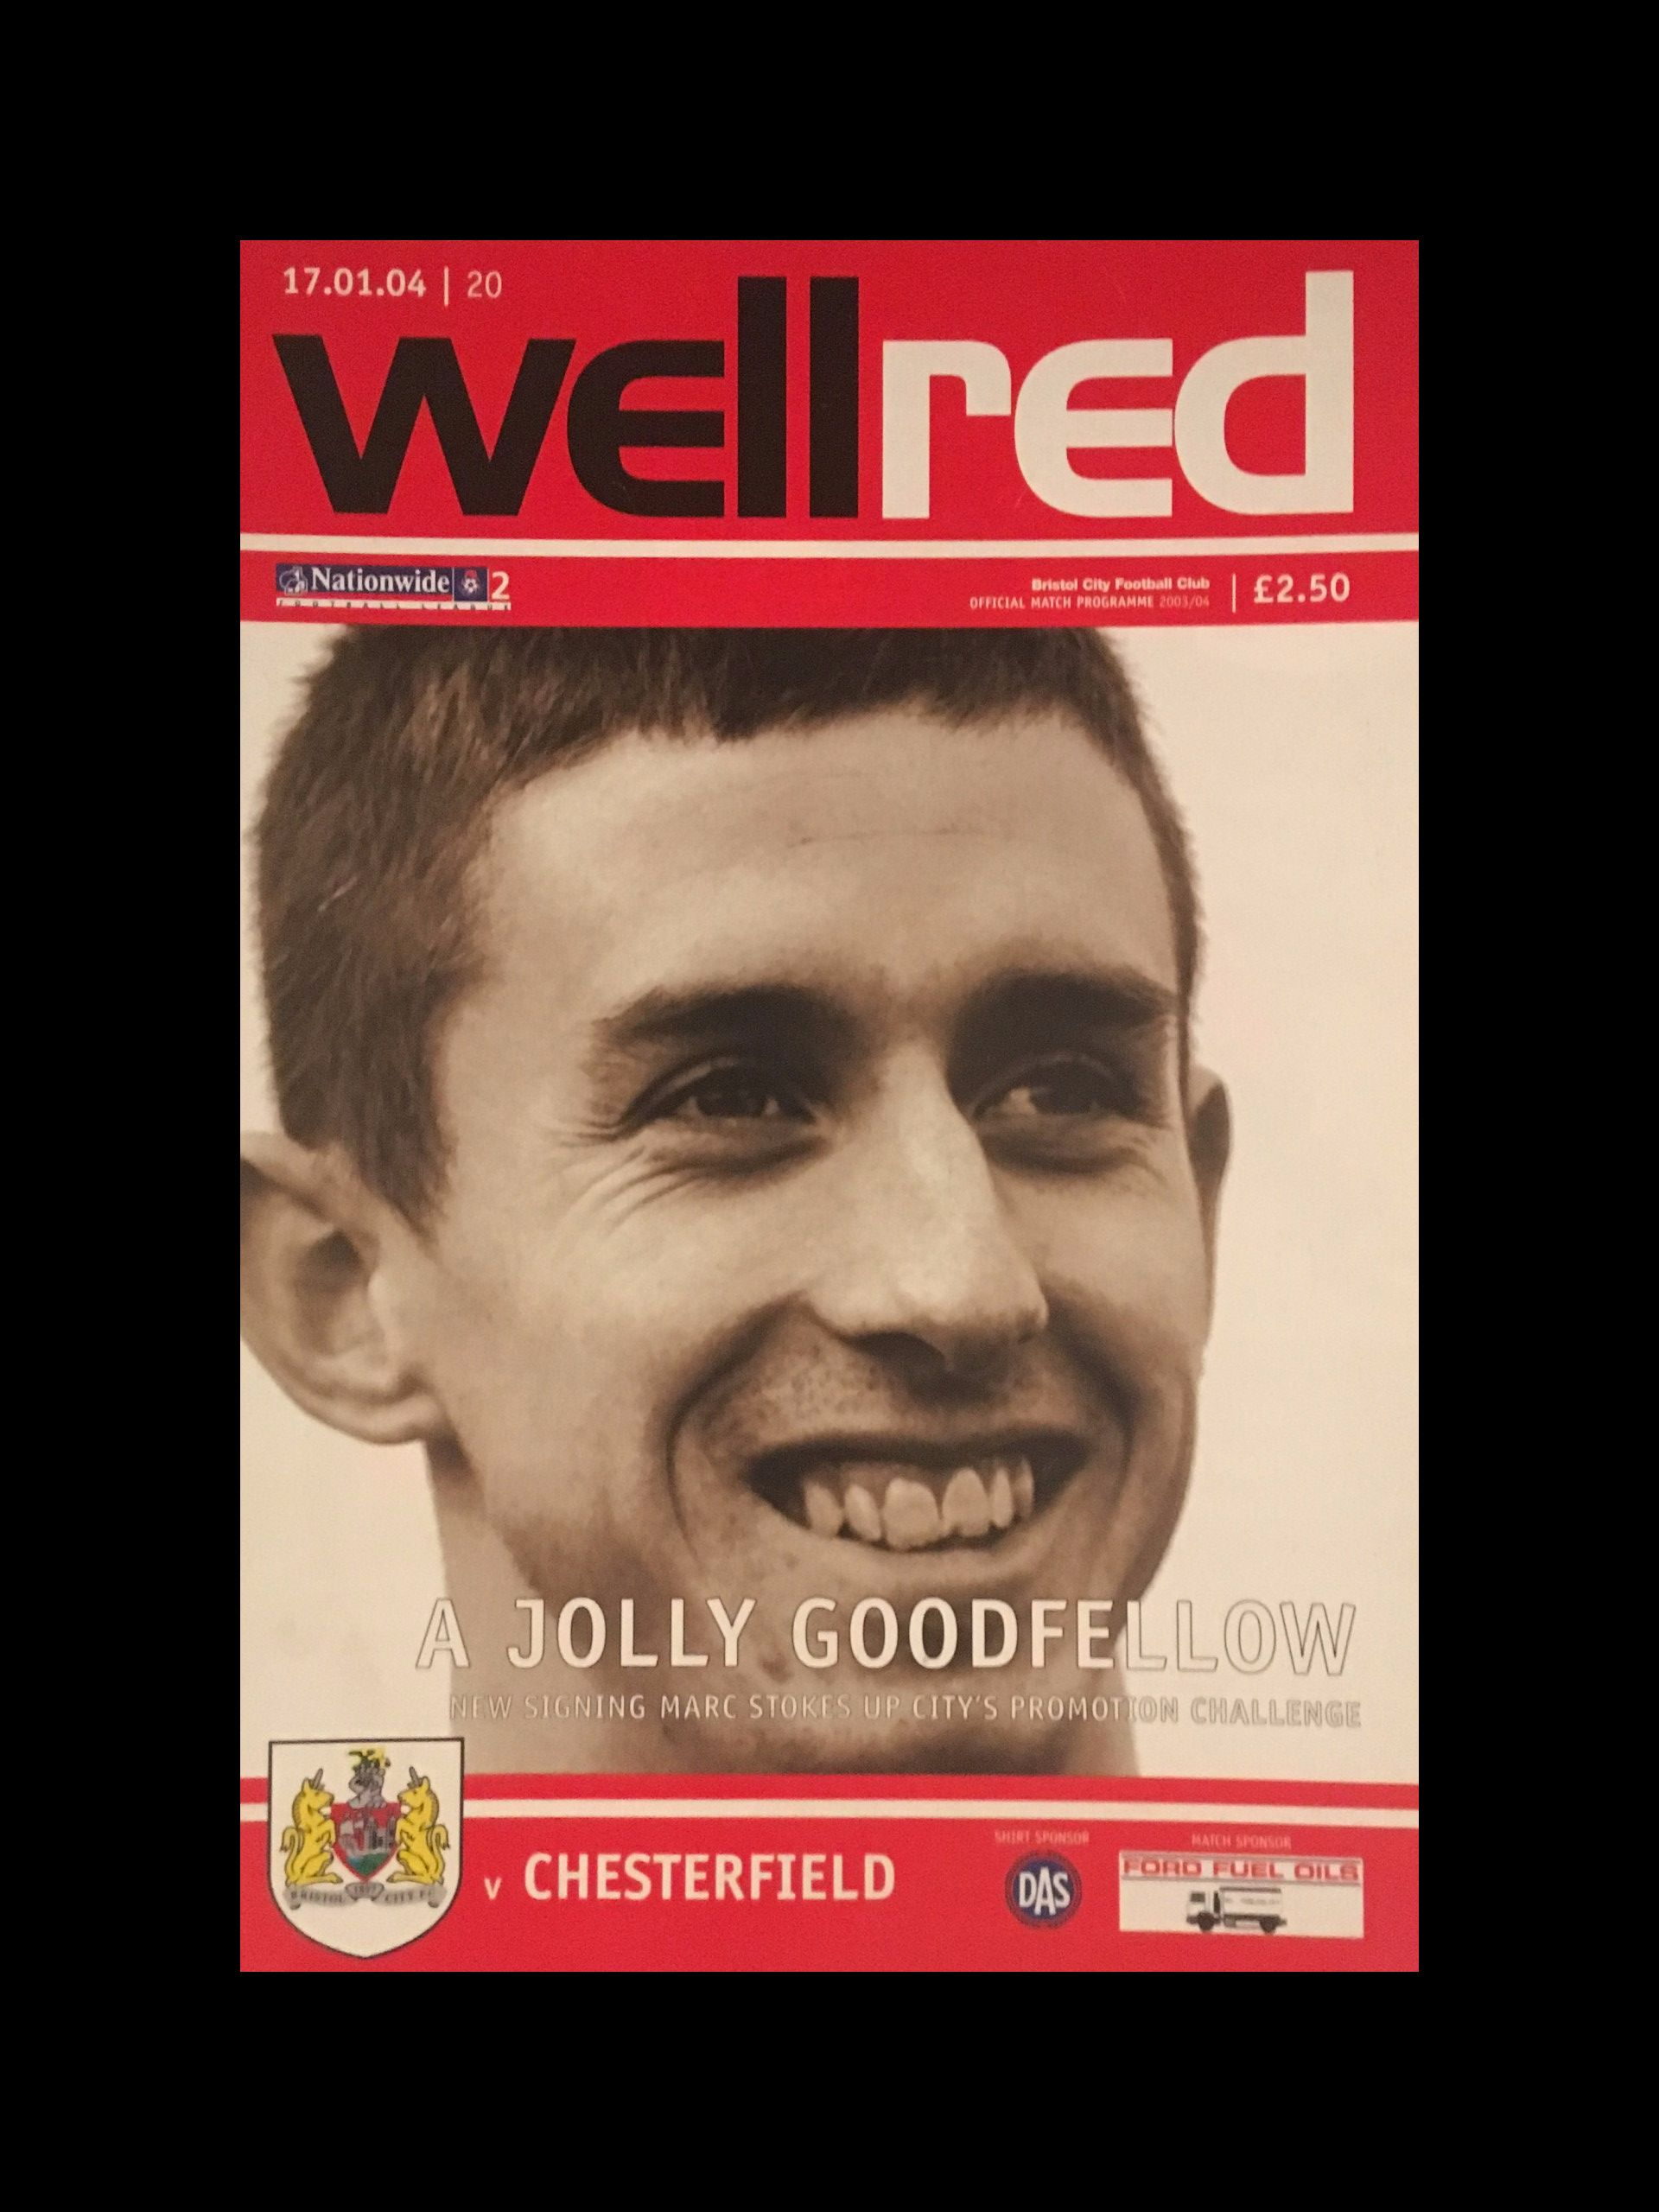 Bristol City v Chesterfield 17-01-2004 Programme